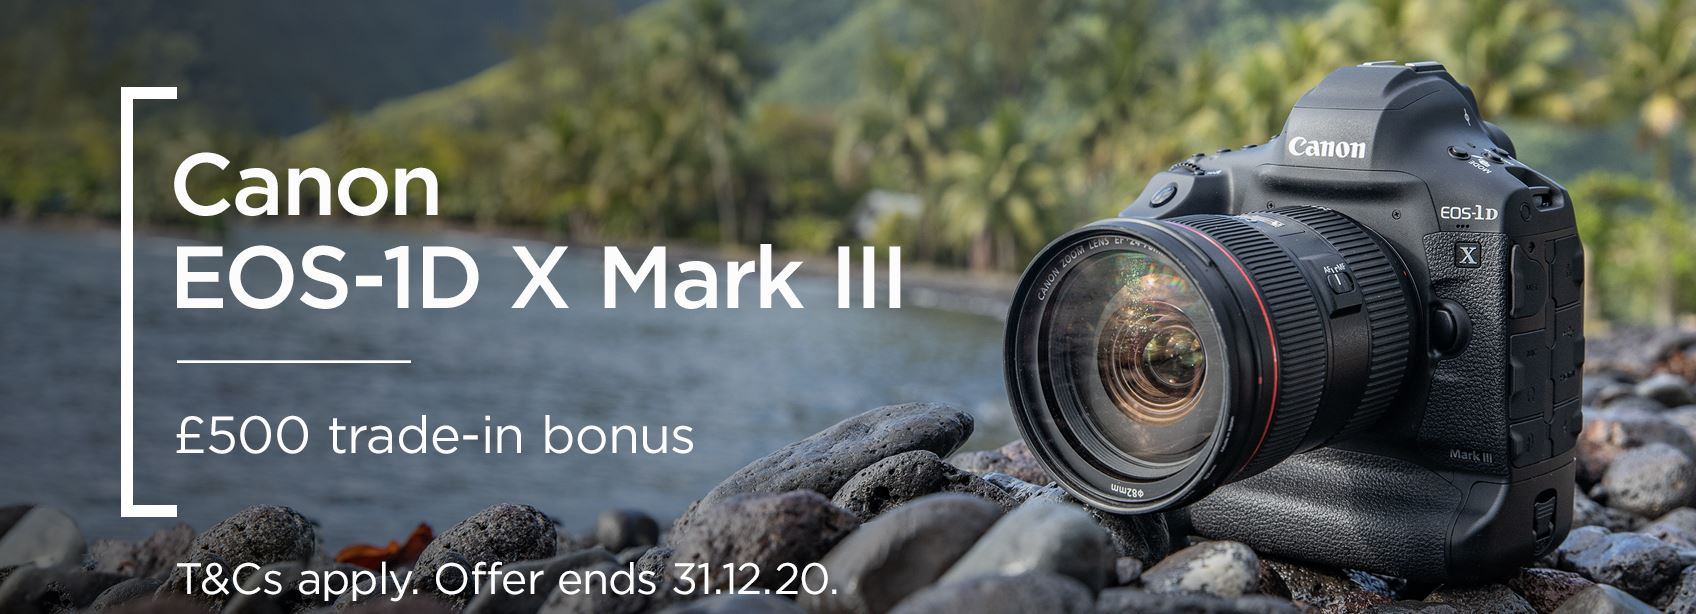 Canon EOS-1D X Mark III - £500 trade-in bonus